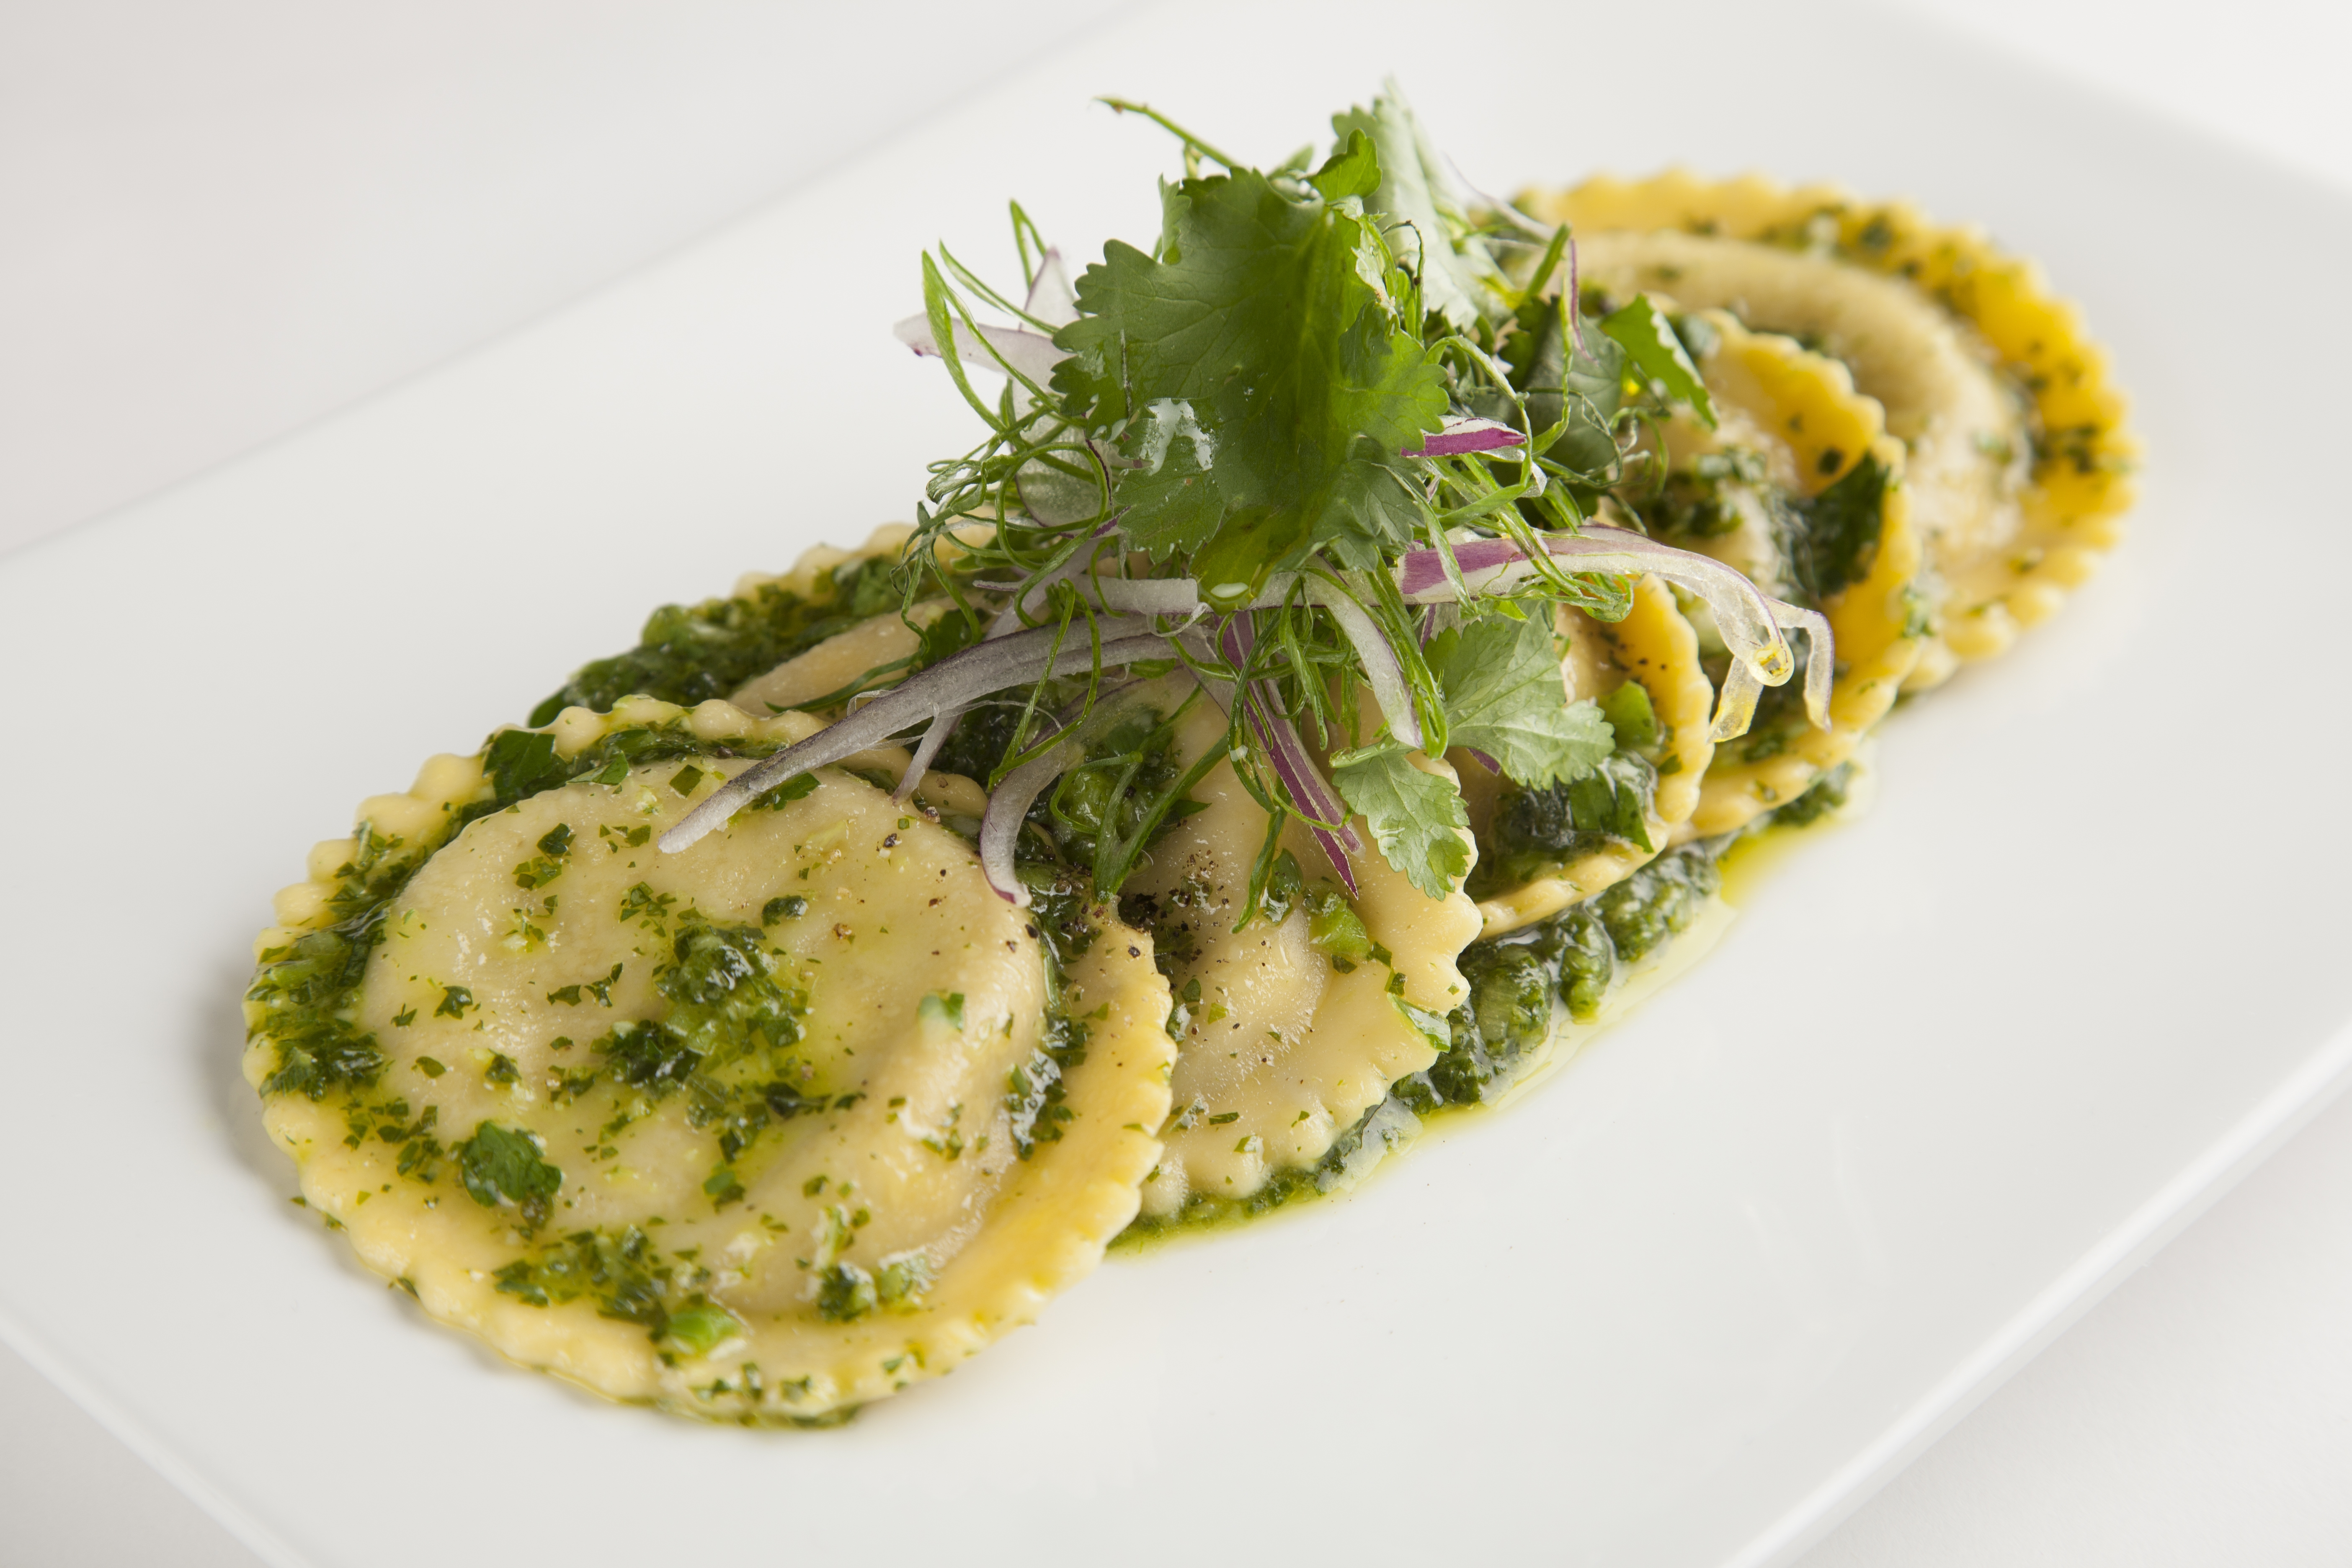 Carla's Pasta Recipe for Braised Beef Ravioli with Chimichurri